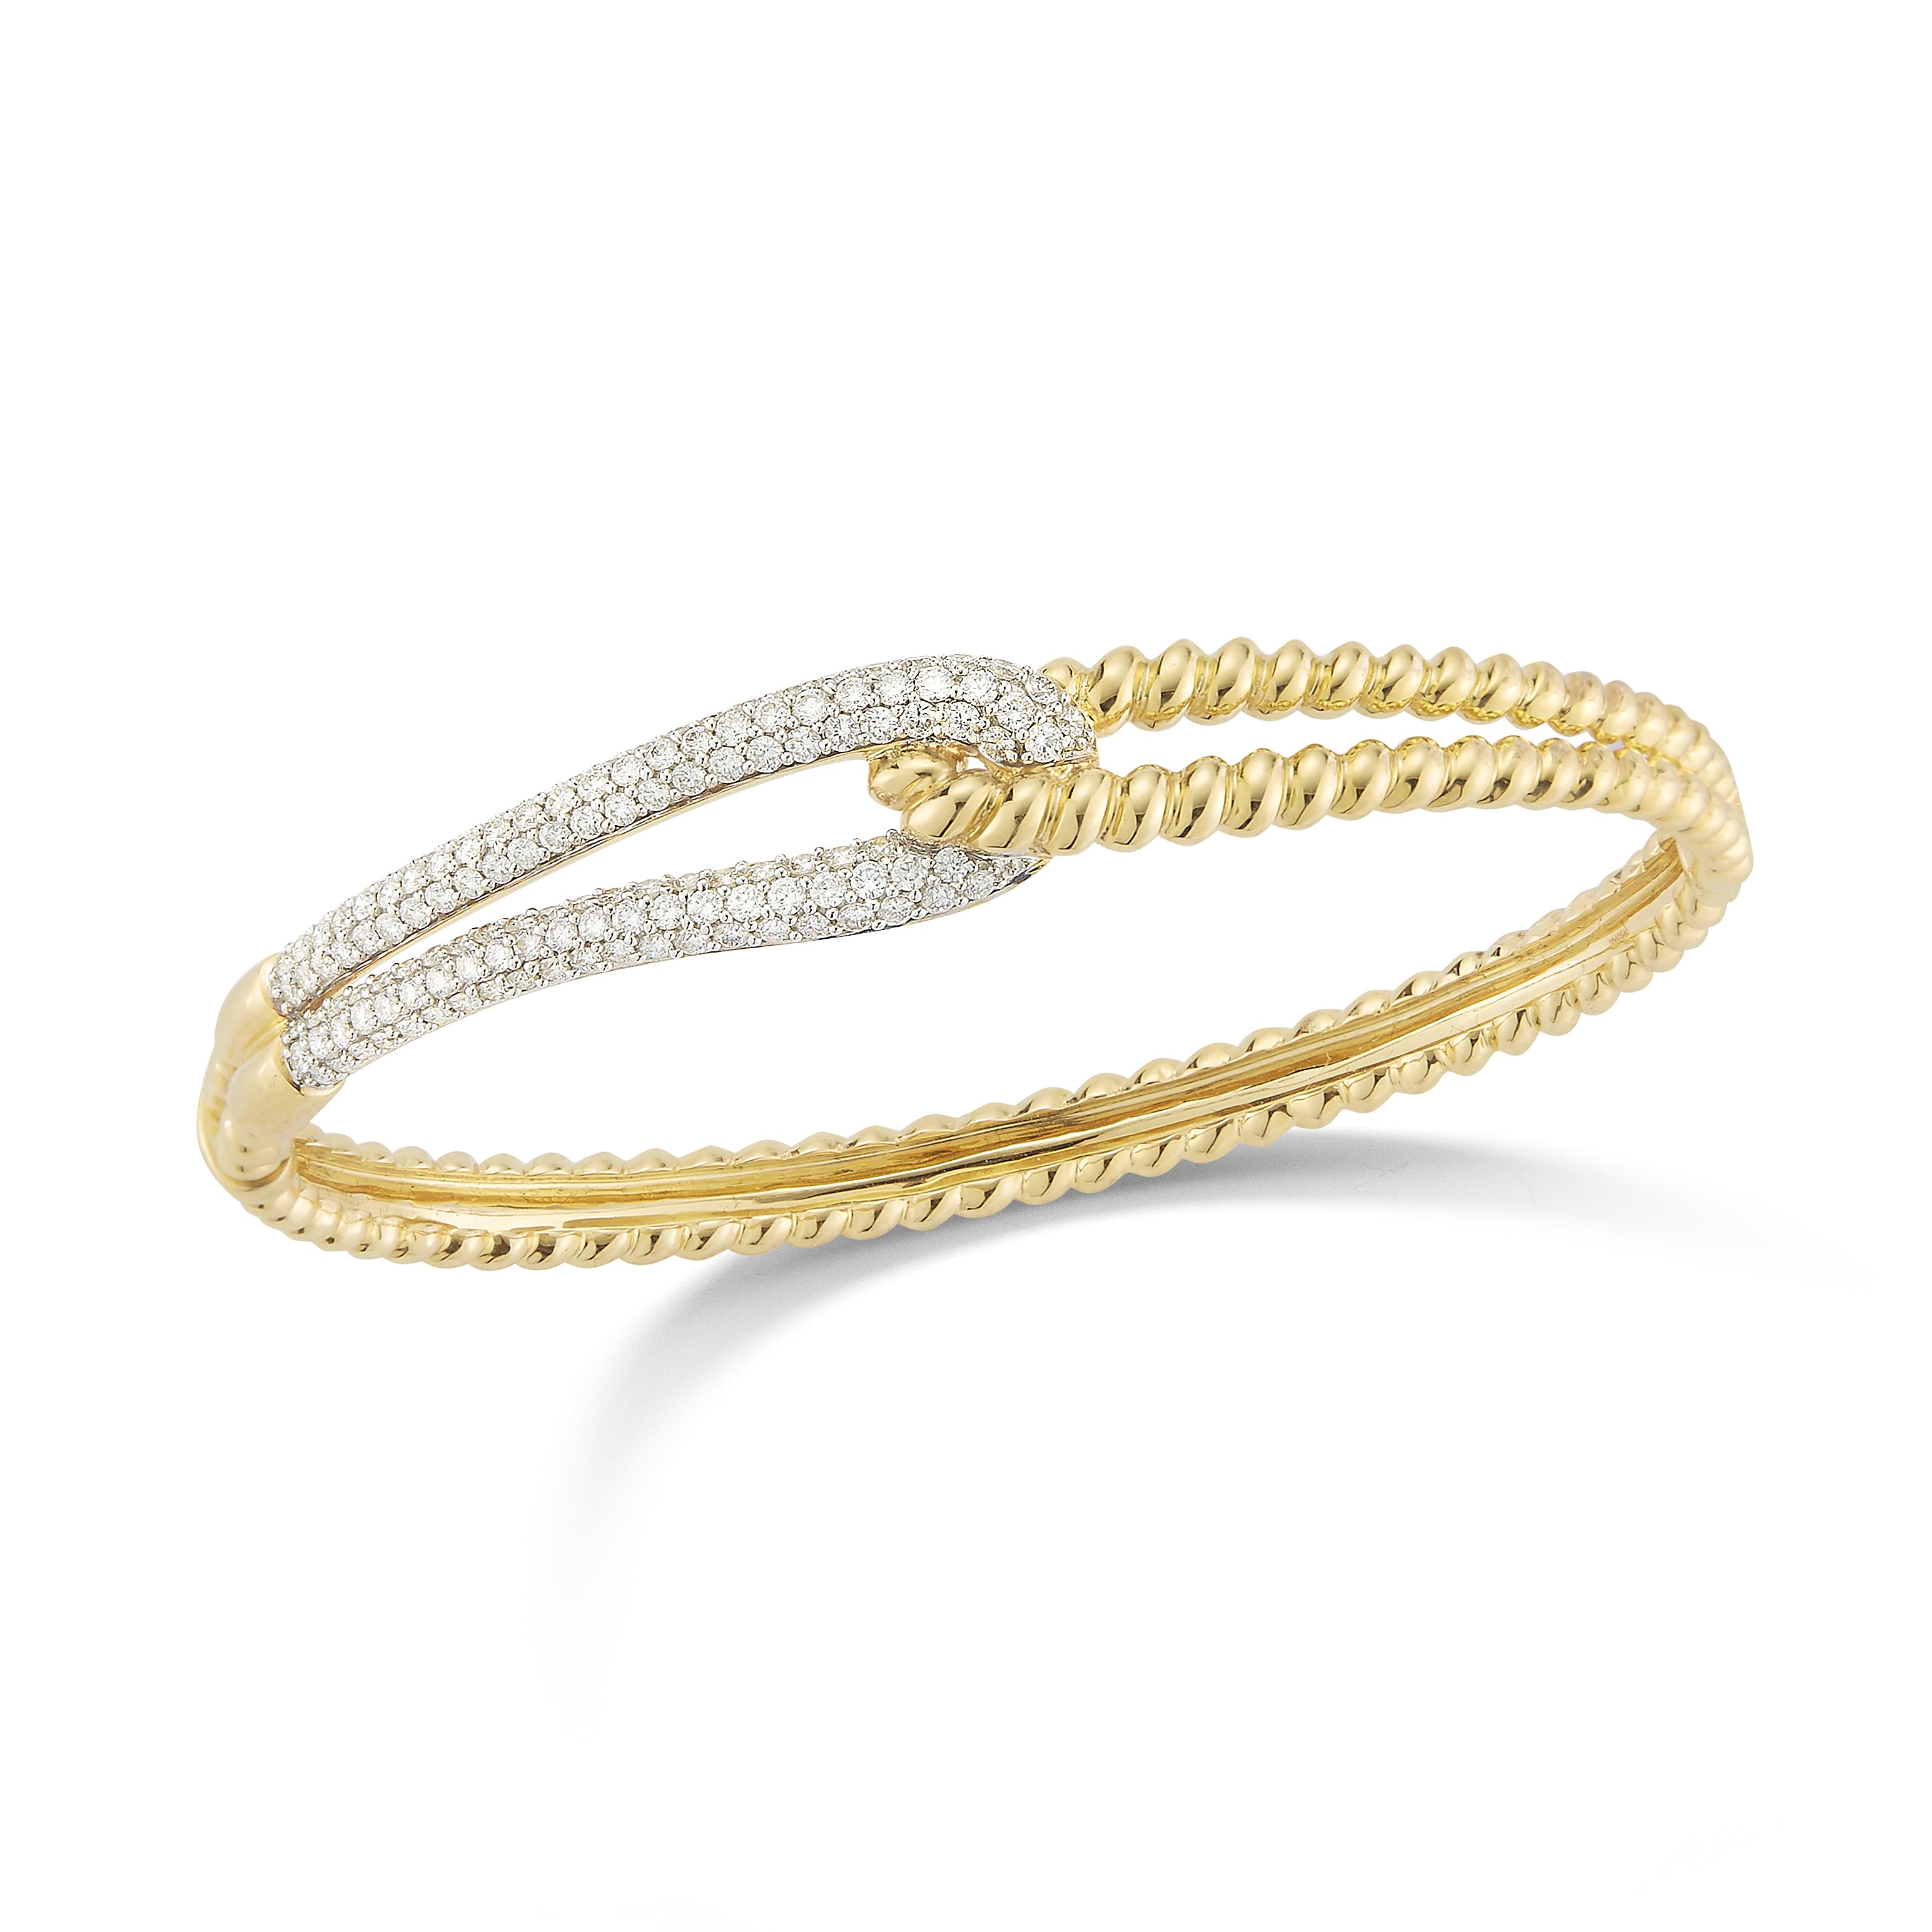 designsashley product bracelet yellow ashley gold designs morgan bangle bracelets bangles